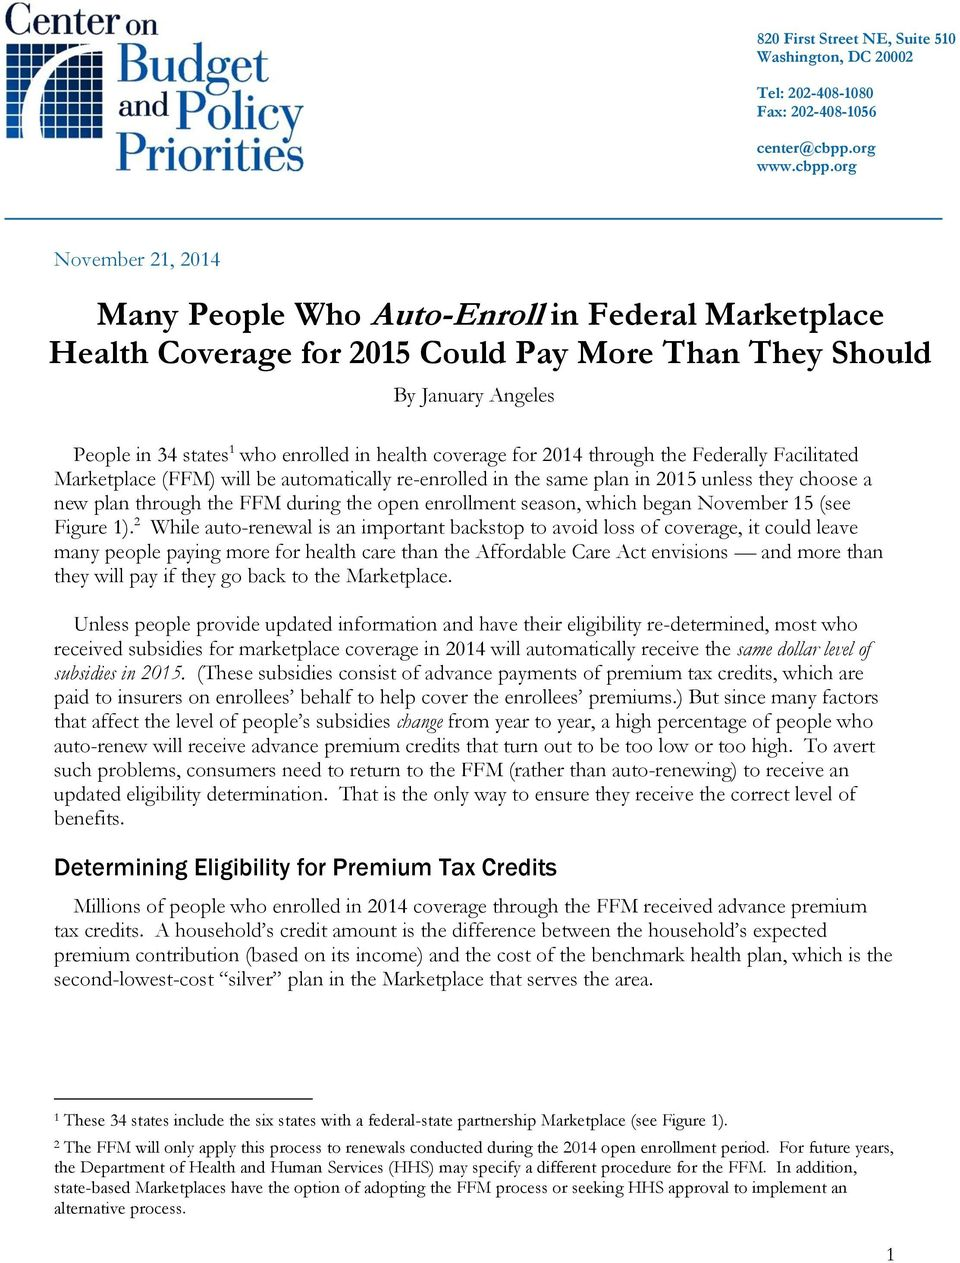 org November 21, 2014 Many People Who Auto-Enroll in Federal Marketplace Health Coverage for 2015 Could Pay More Than They Should By January Angeles People in 34 states 1 who enrolled in health